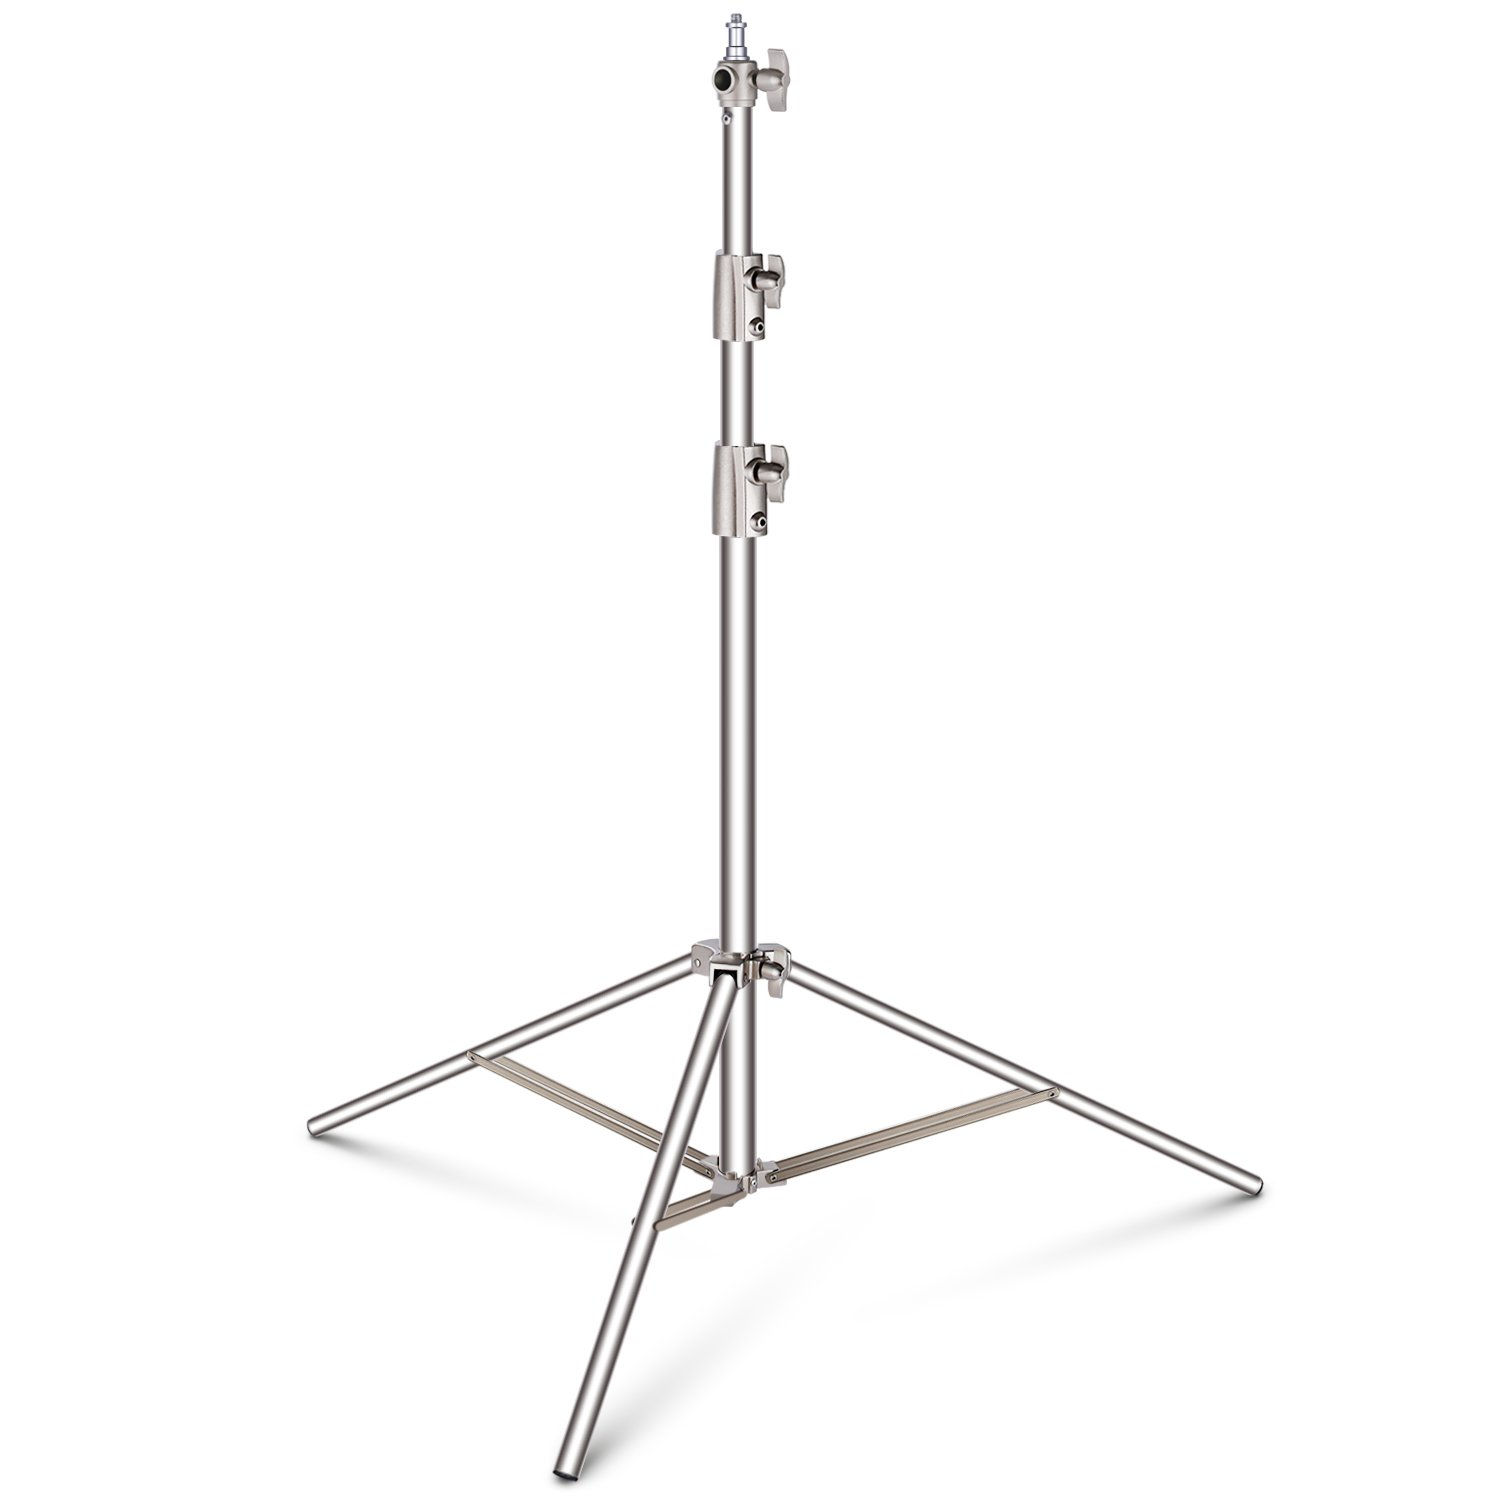 Neewer Stainless Steel Light Stand 102 inches/260 centimeters Heavy Duty with 1/4-inch to 3/8-inch Universal Adapter for Studio Softbox, Monolight and Other Photographic Equipment by Neewer